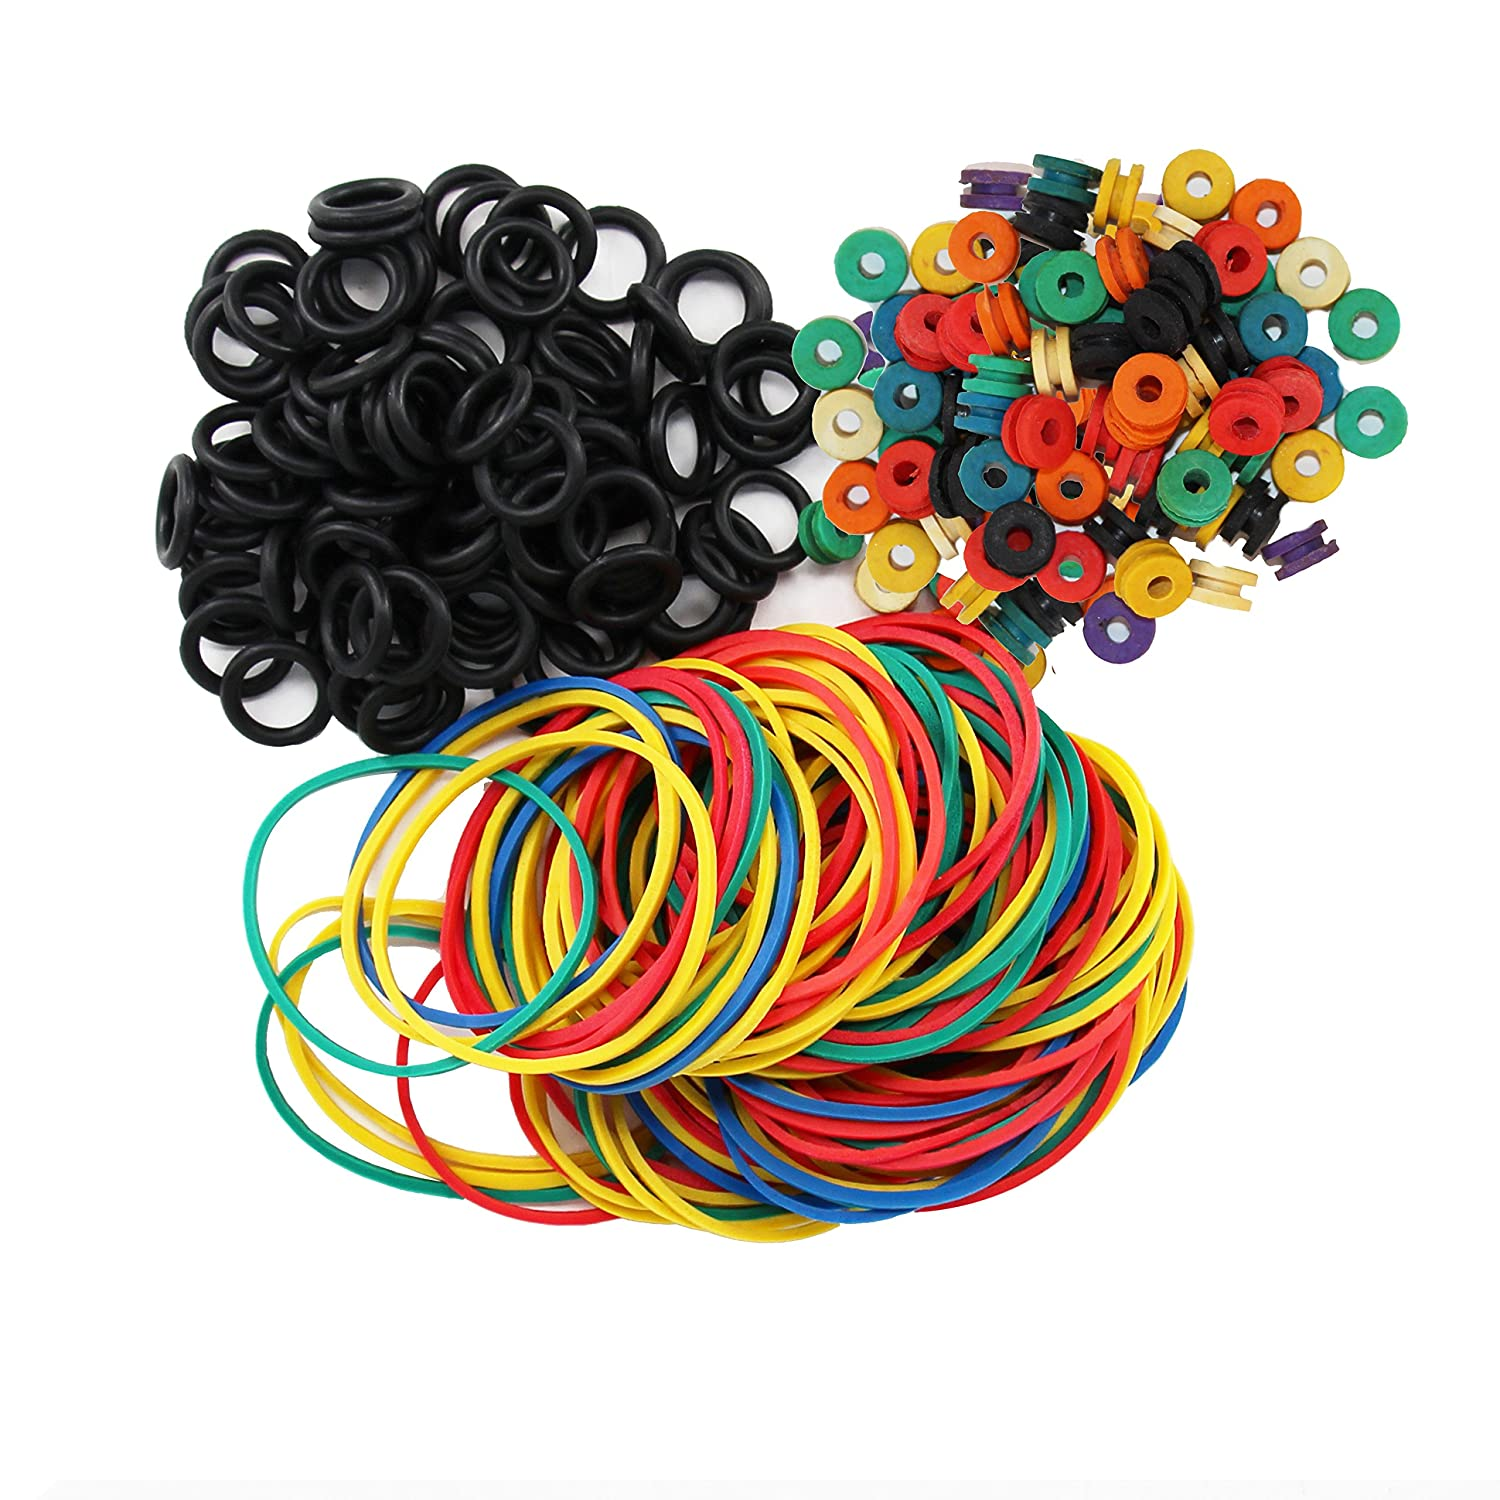 ITATOO Tattoo Grommets, O Ring's and Rubber Bands 300 Pcs N201022+64A+65